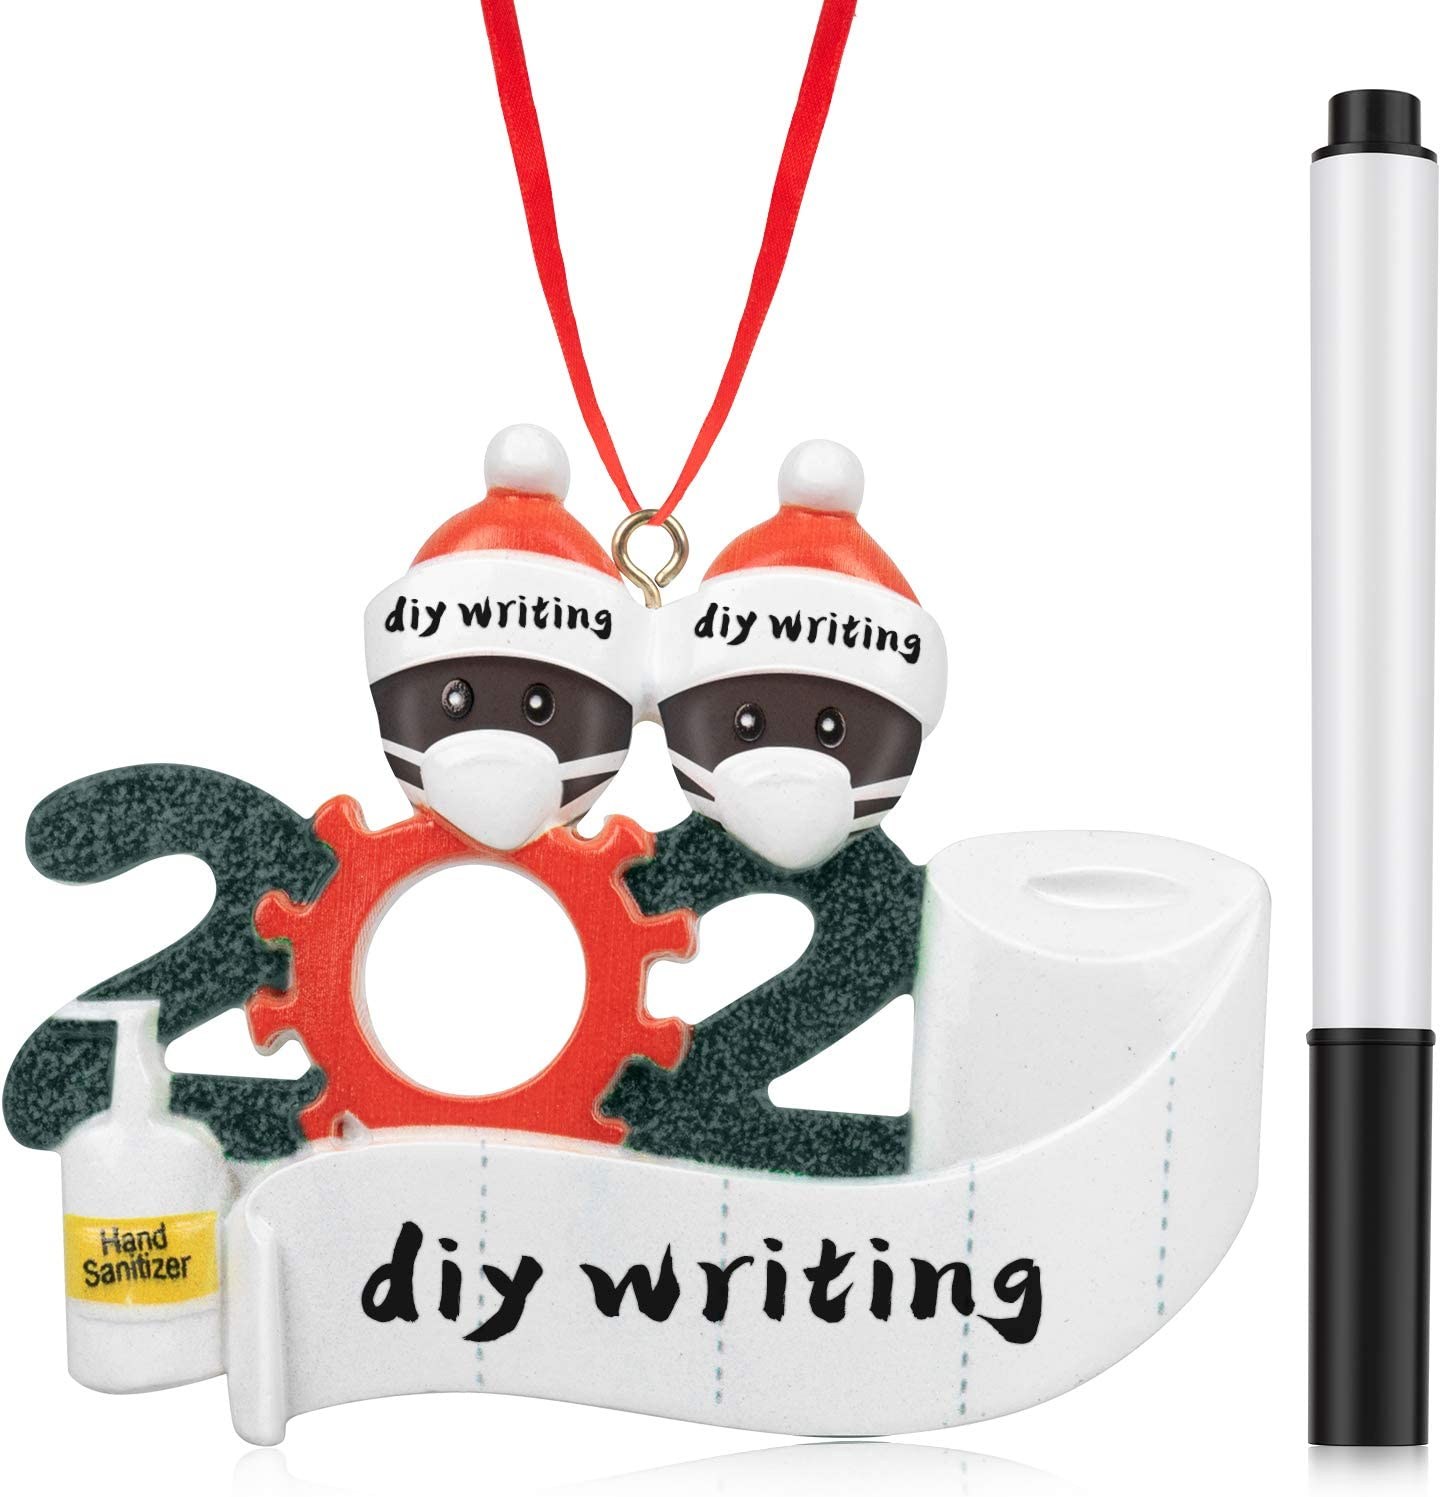 TRENZADO Personalized Name Christmas Ornament Kit with Mask, 2020 Quarantine Survivor Family Customized Christmas Decorating Kit, Creative Gift for American African Family of 2, with Marker Pen